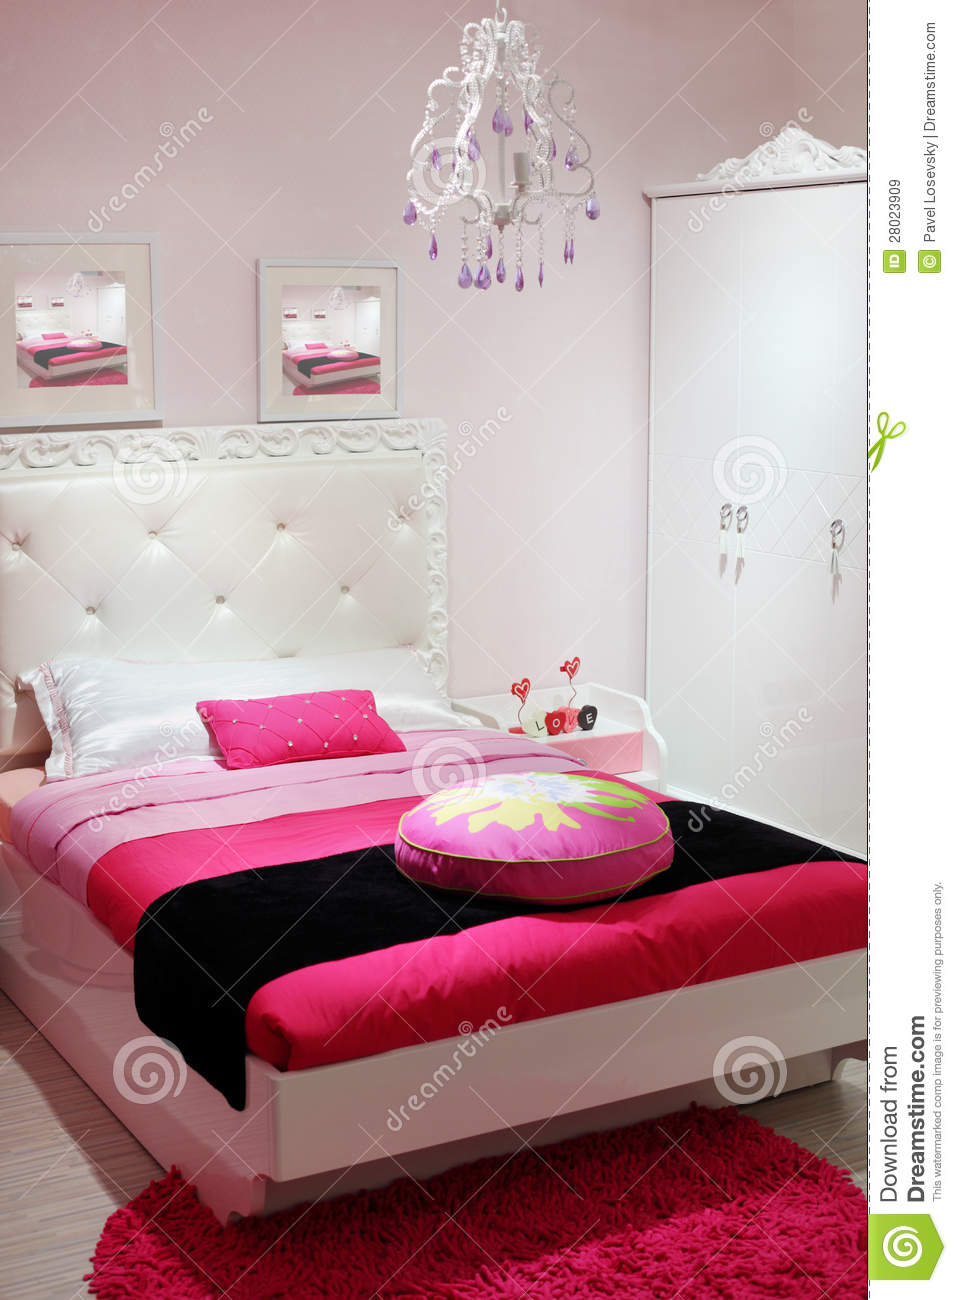 quarto com wardrobe branco e tapete cor de rosa imagens. Black Bedroom Furniture Sets. Home Design Ideas